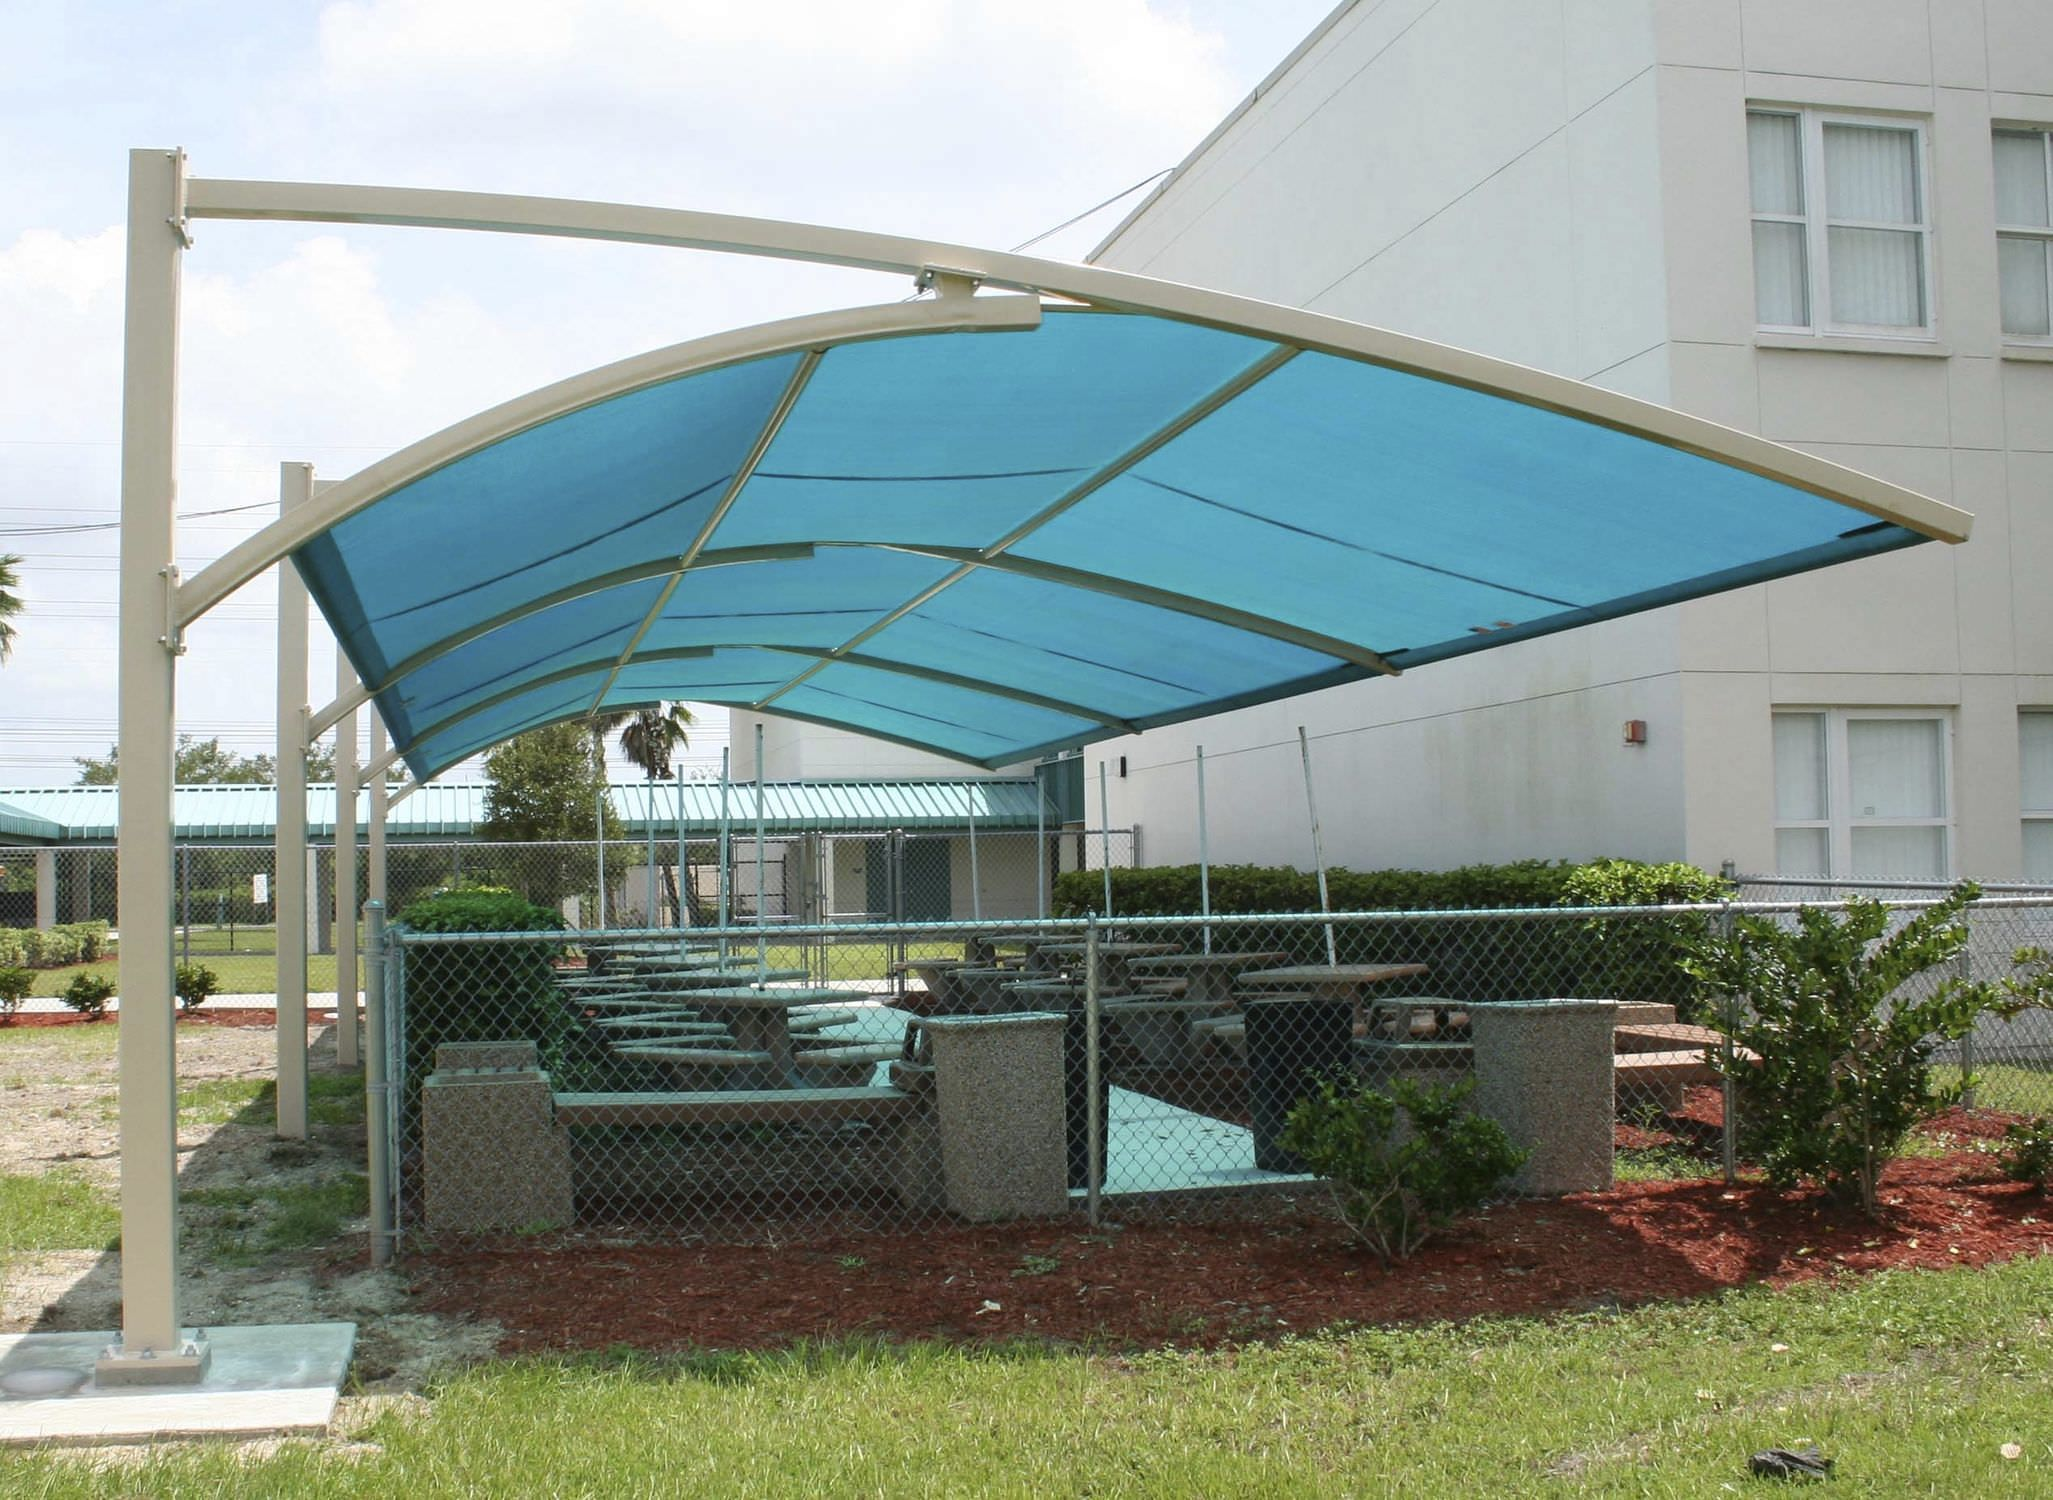 Cool White Iron Column Cantilever Blue Pool Shade Outdoor Canopy Over Gardening Furnishing As Decorate Green & Cool White Iron Column Cantilever Blue Pool Shade Outdoor Canopy ...